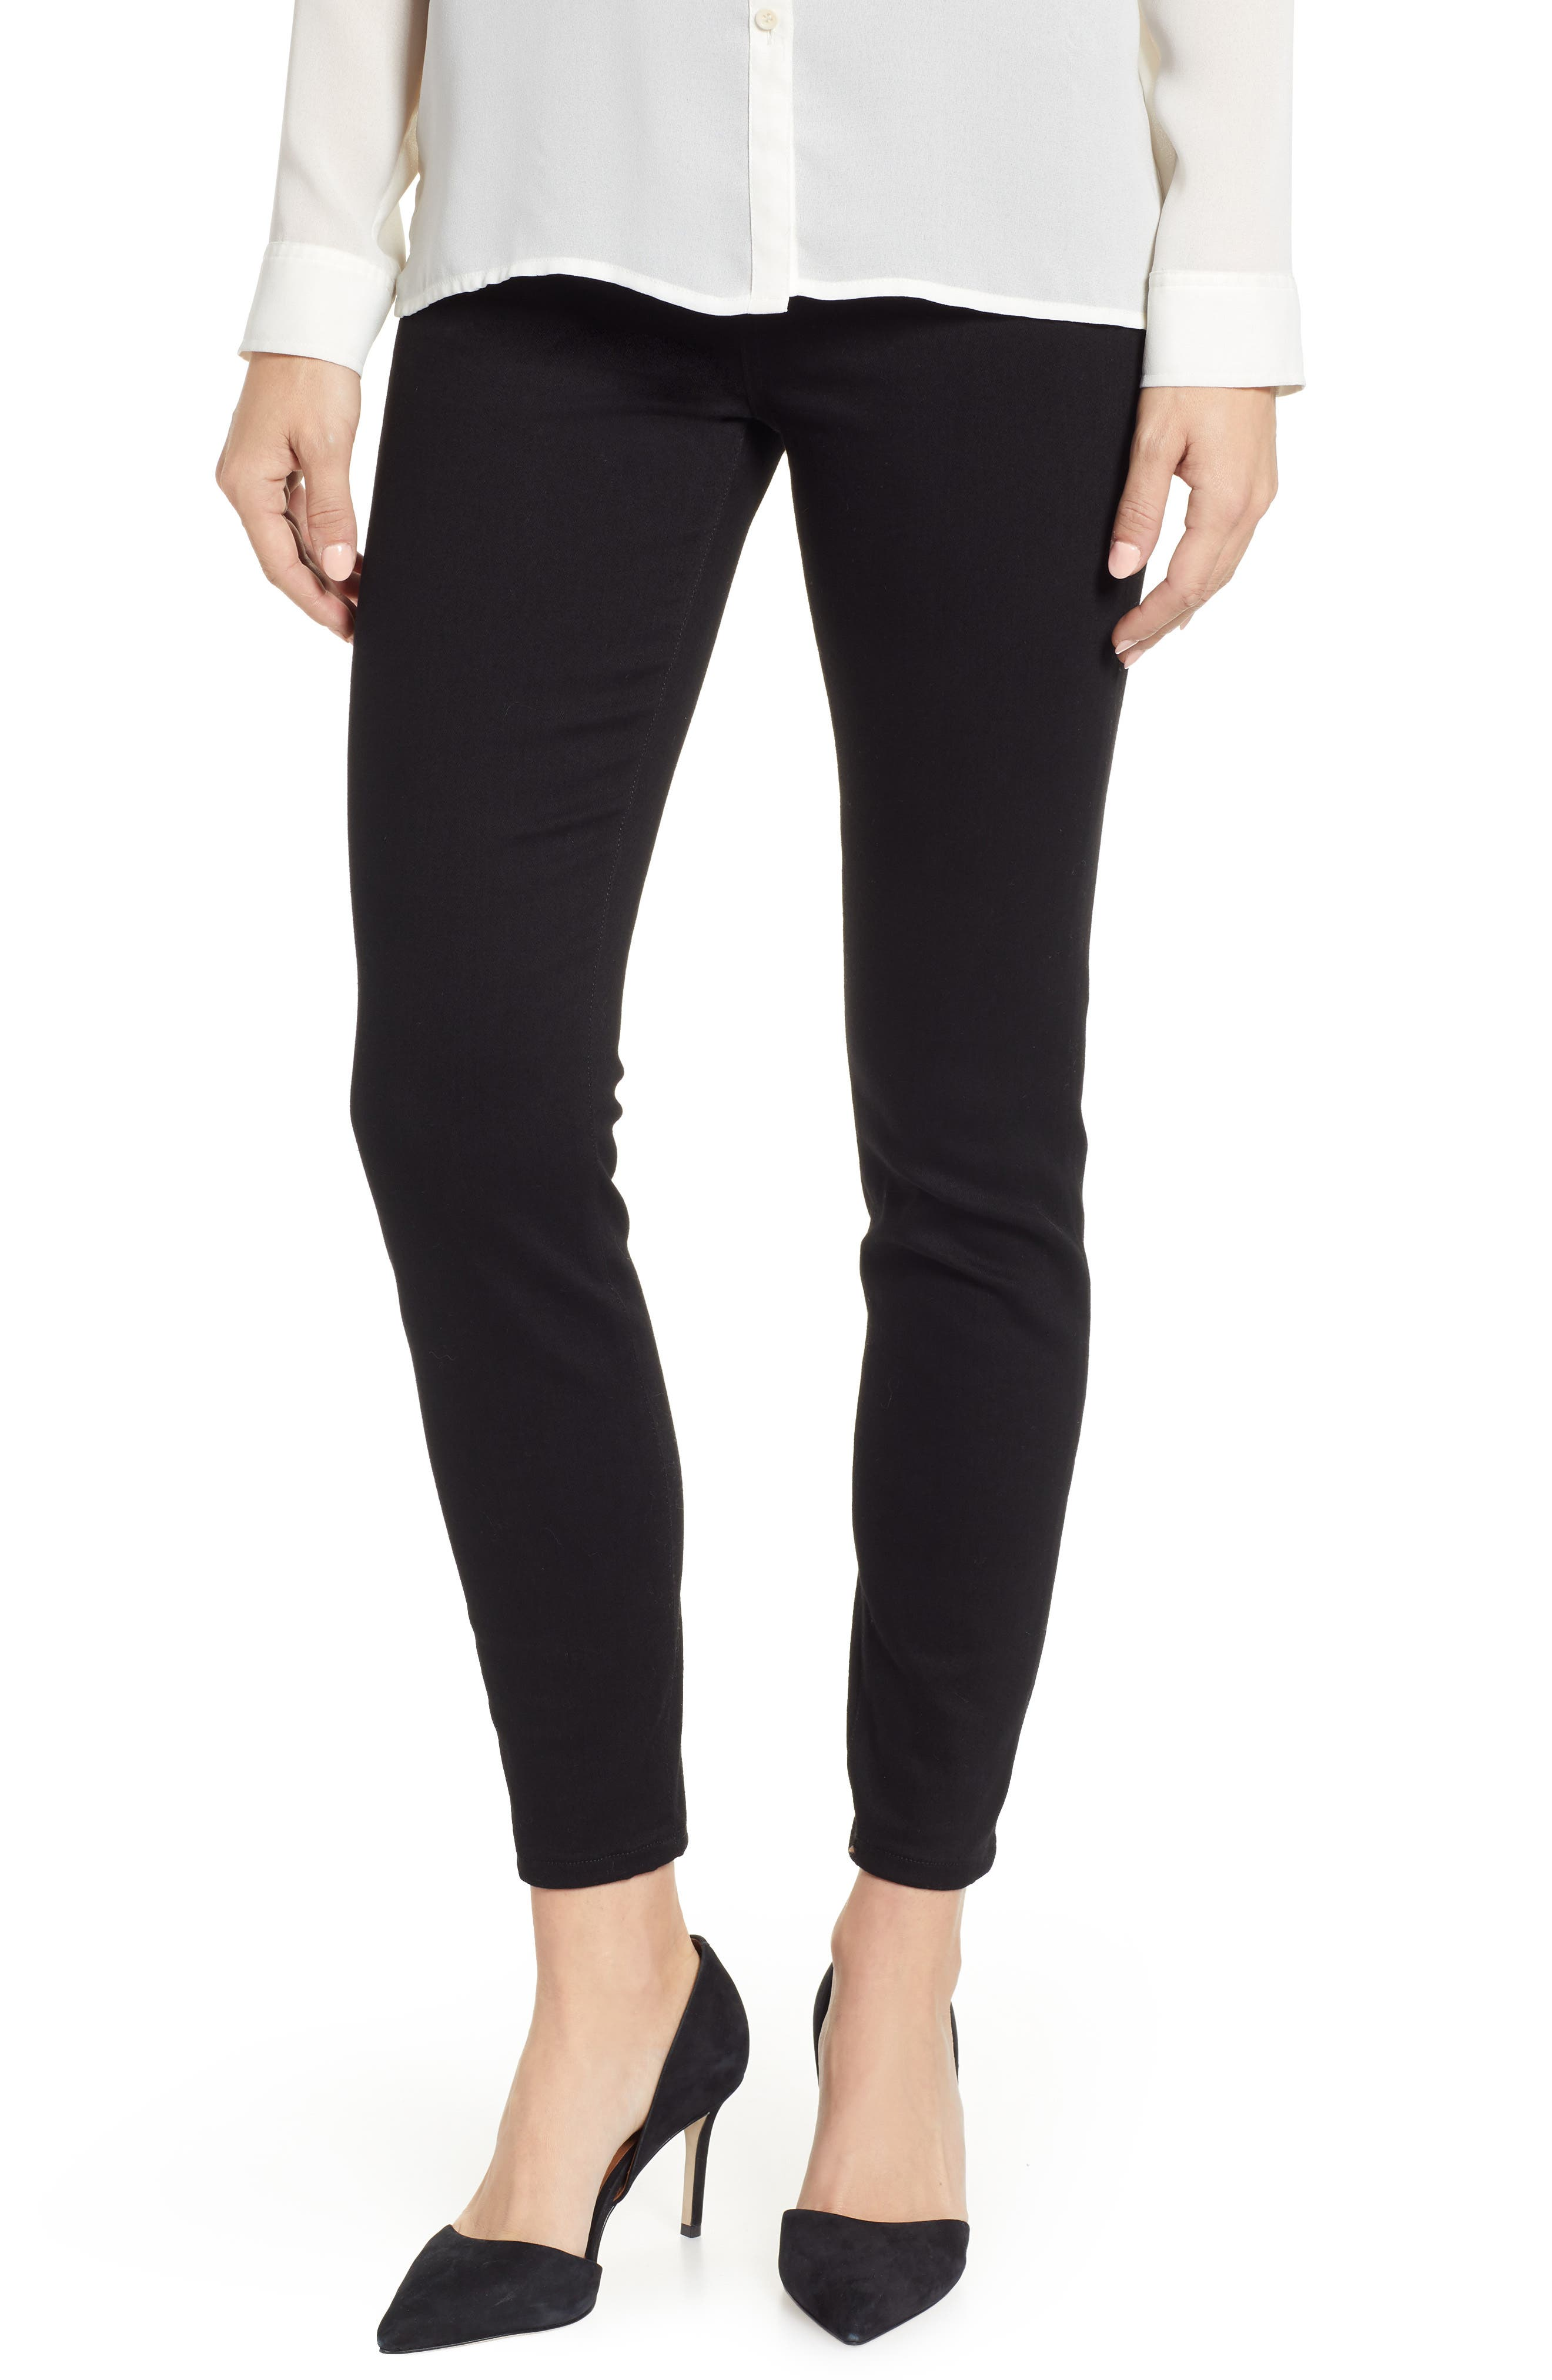 Chloe Pull-On Stretch Skinny Ankle Jeans,                             Main thumbnail 1, color,                             BLACK RINSE